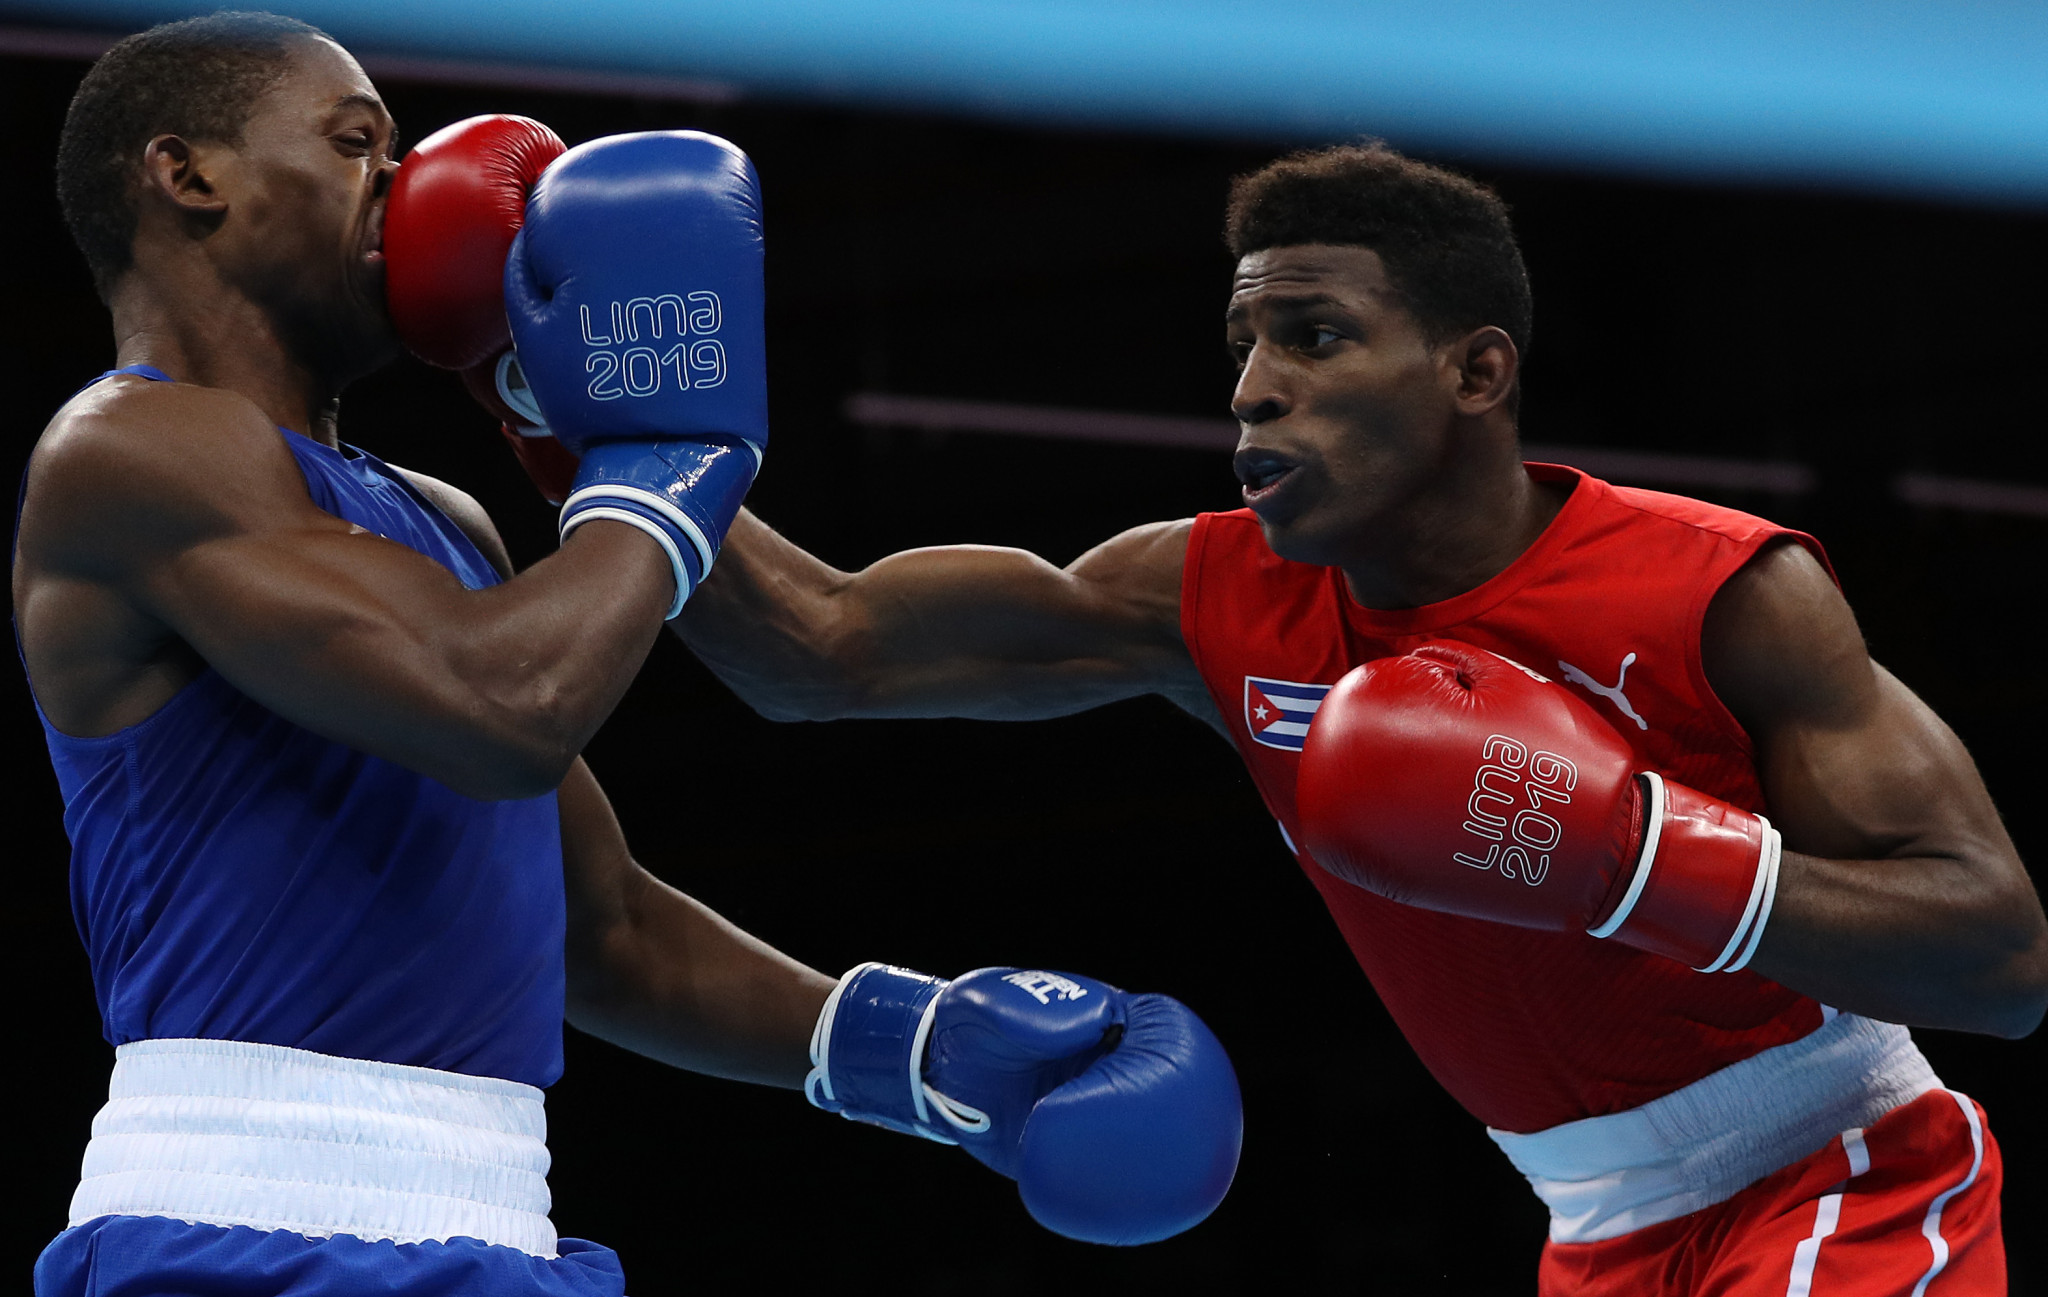 Cuban boxers attend training camp in preparation for Olympic qualifier